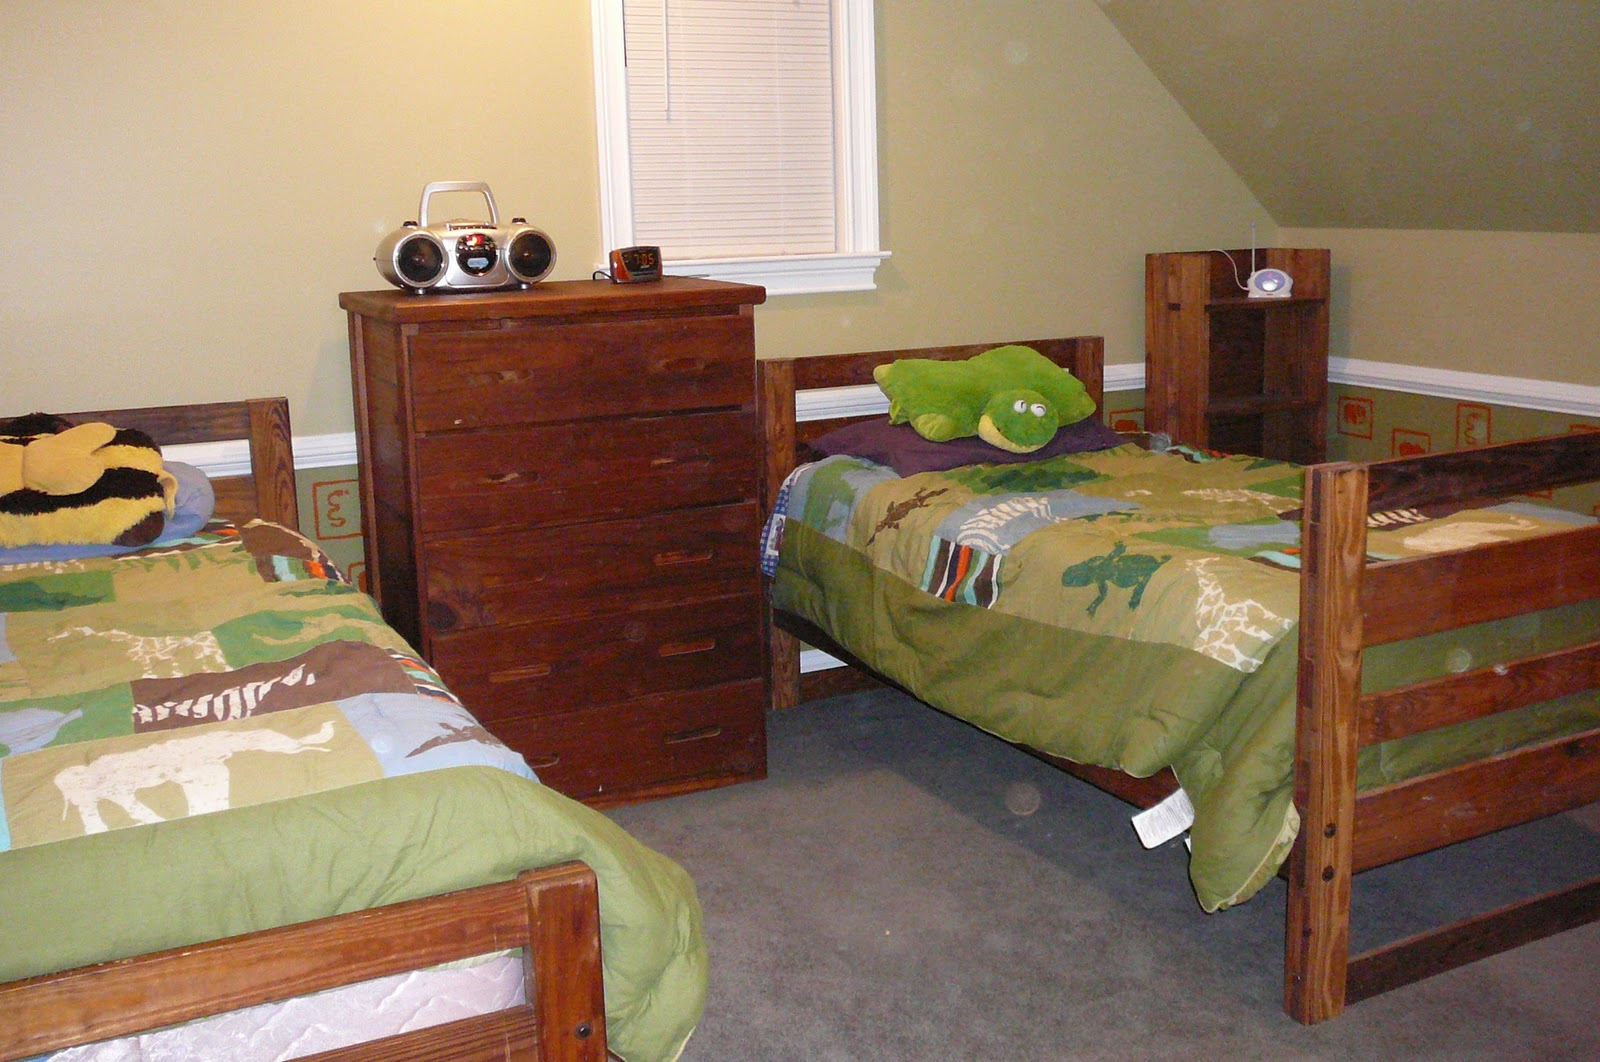 Furniture removal disposal advance junk removal for Furniture removal